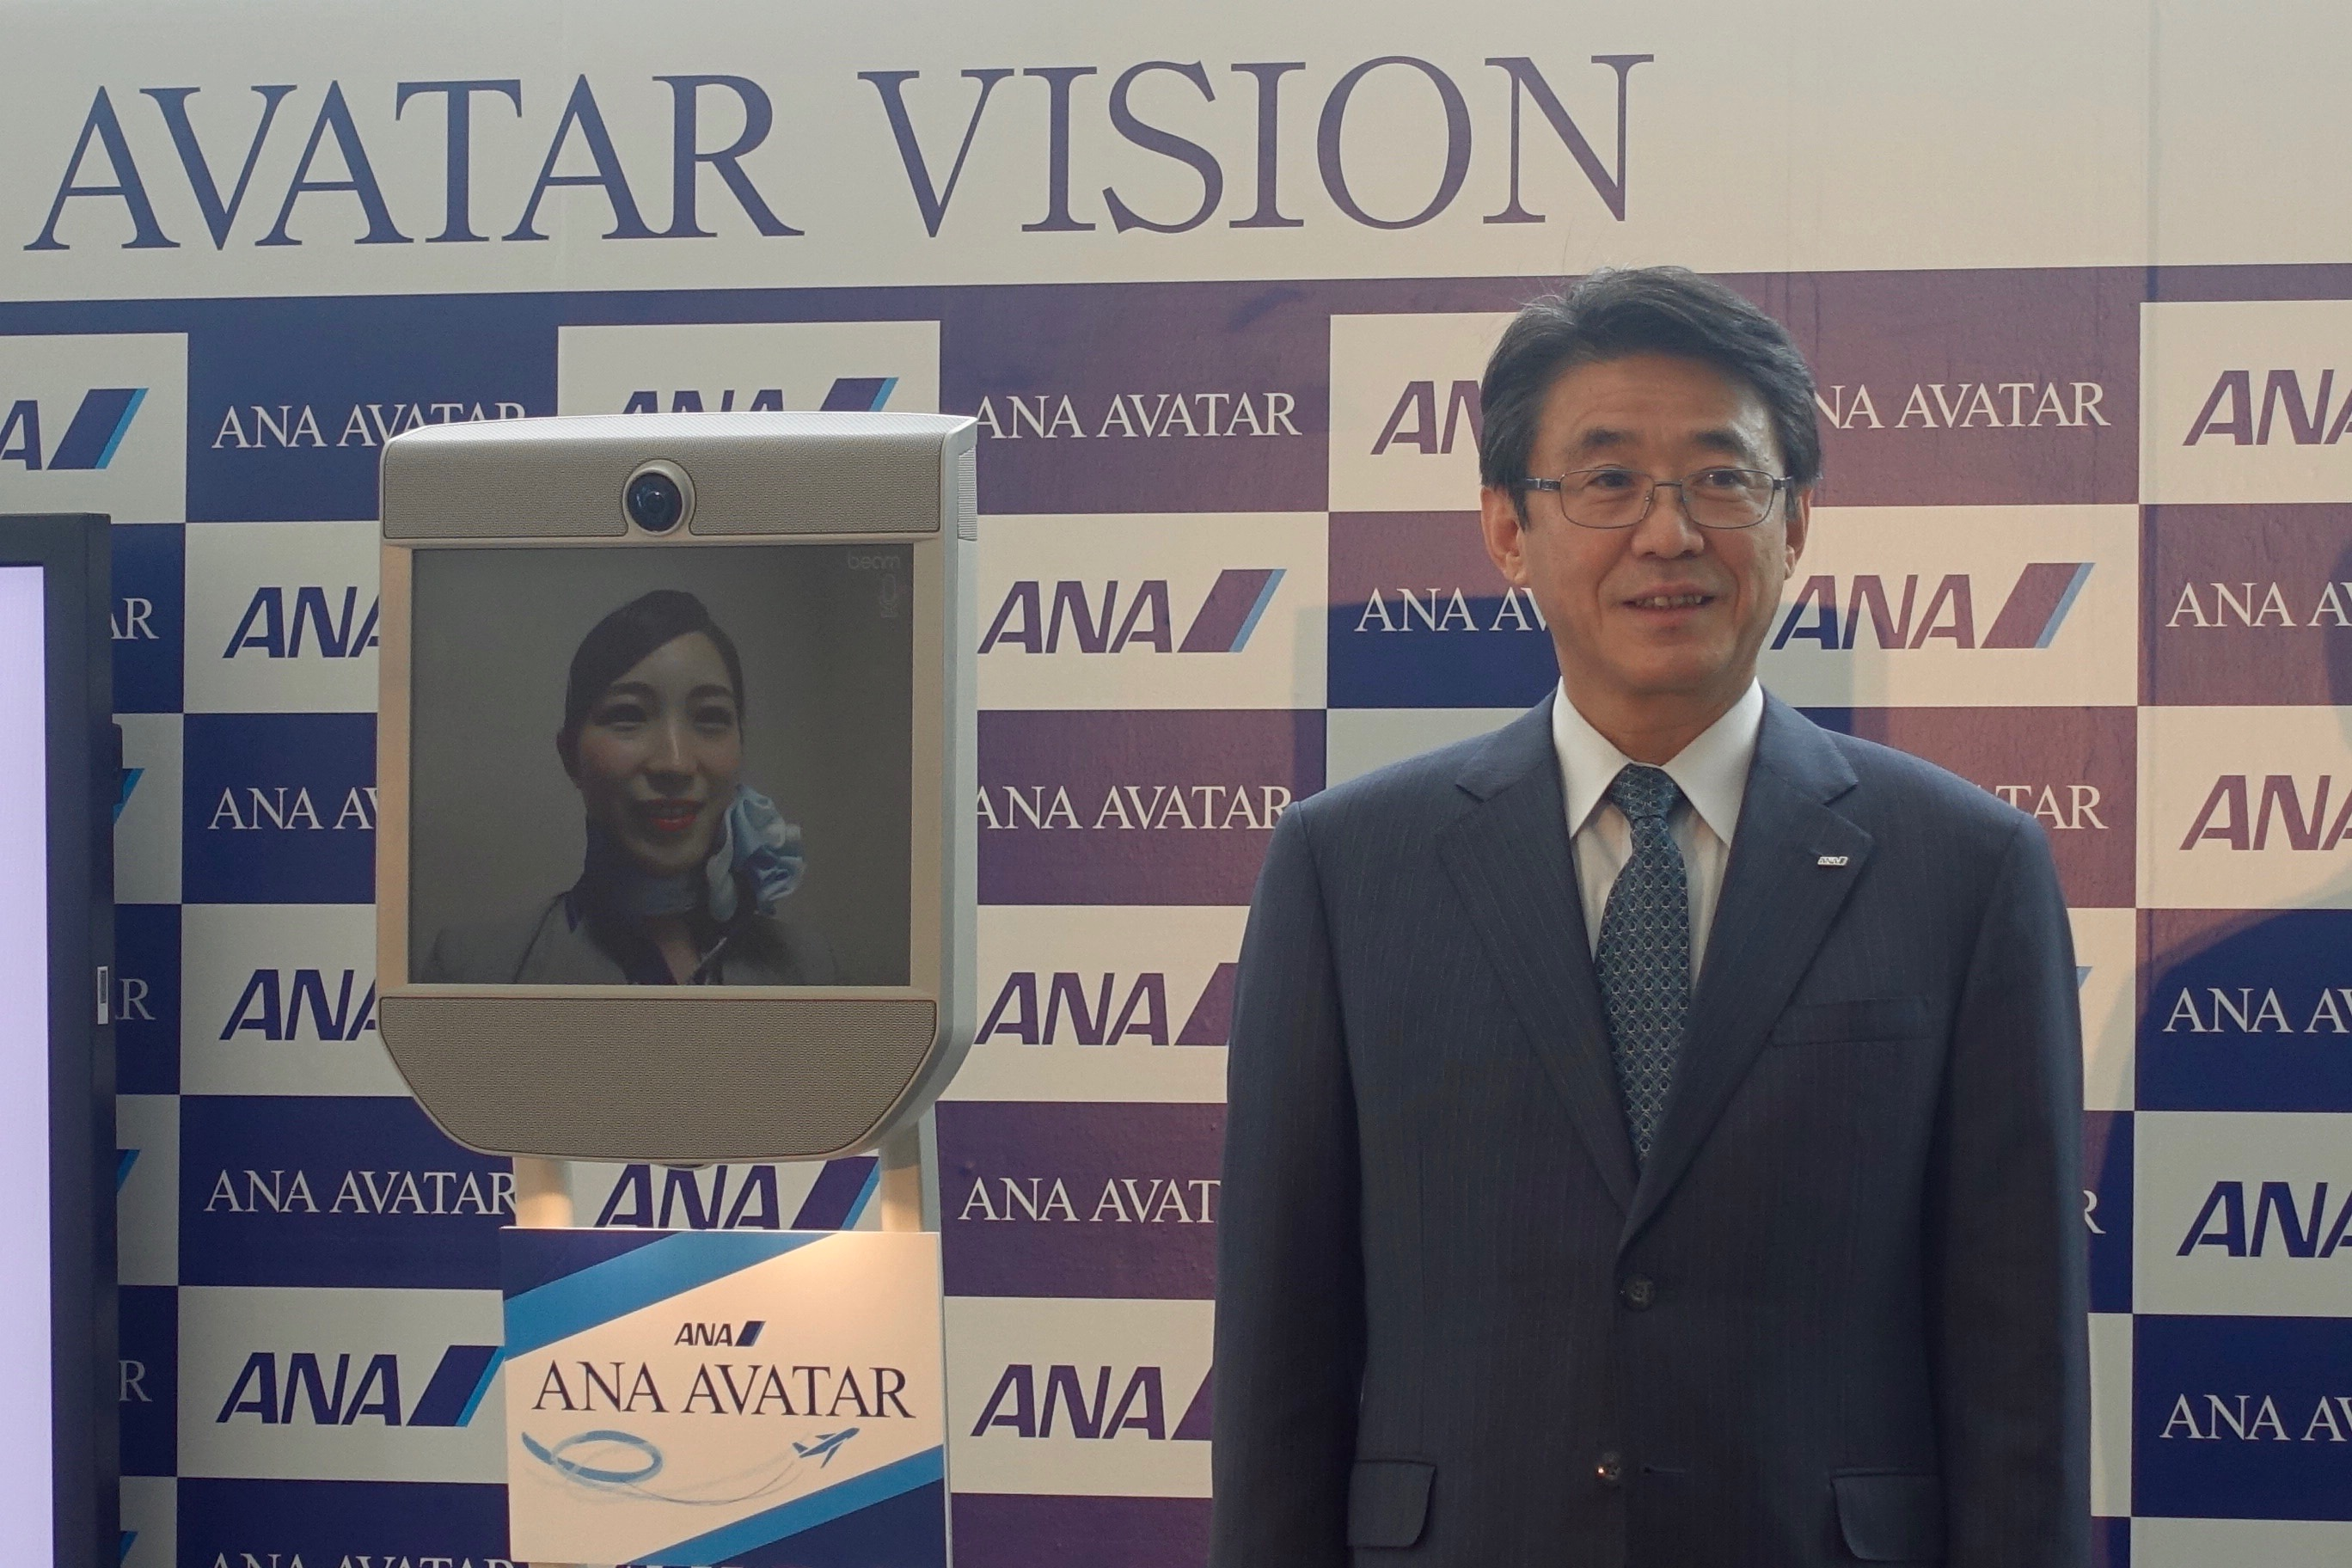 ANA unveils its AVATAR teleportation services, planning to commercialize next spring